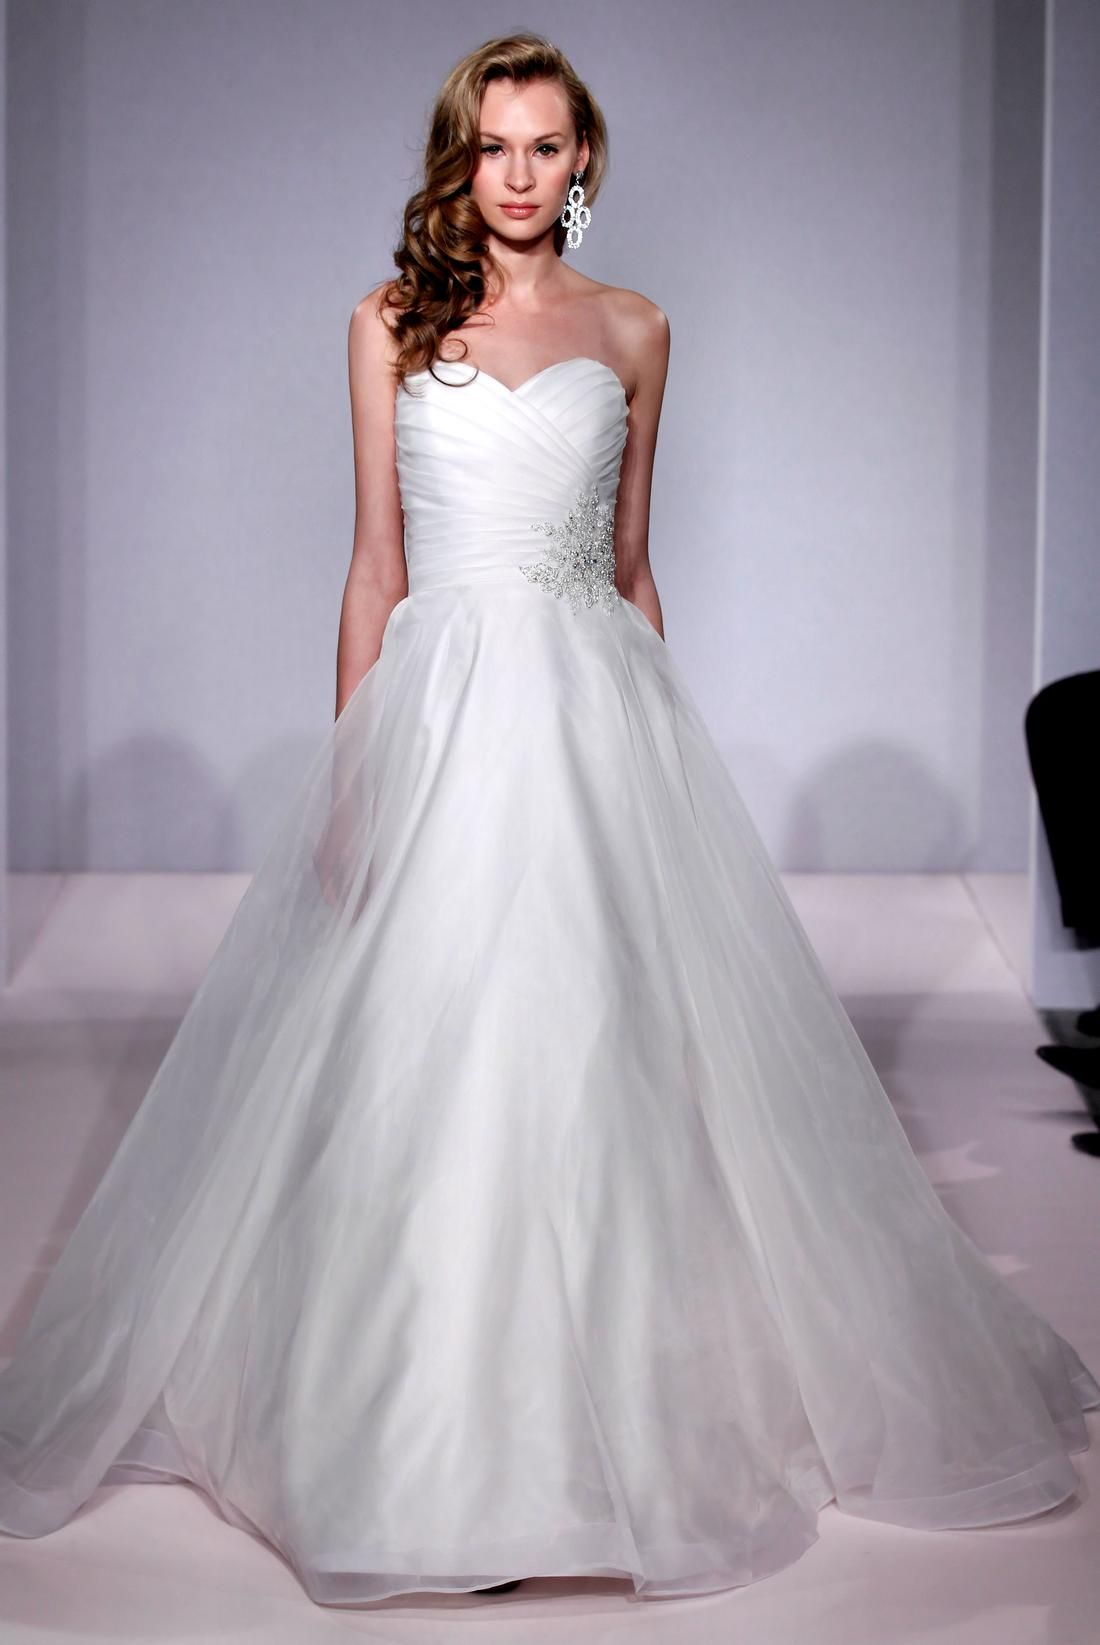 Bridal gowns michelle roth princessball gown wedding dress with